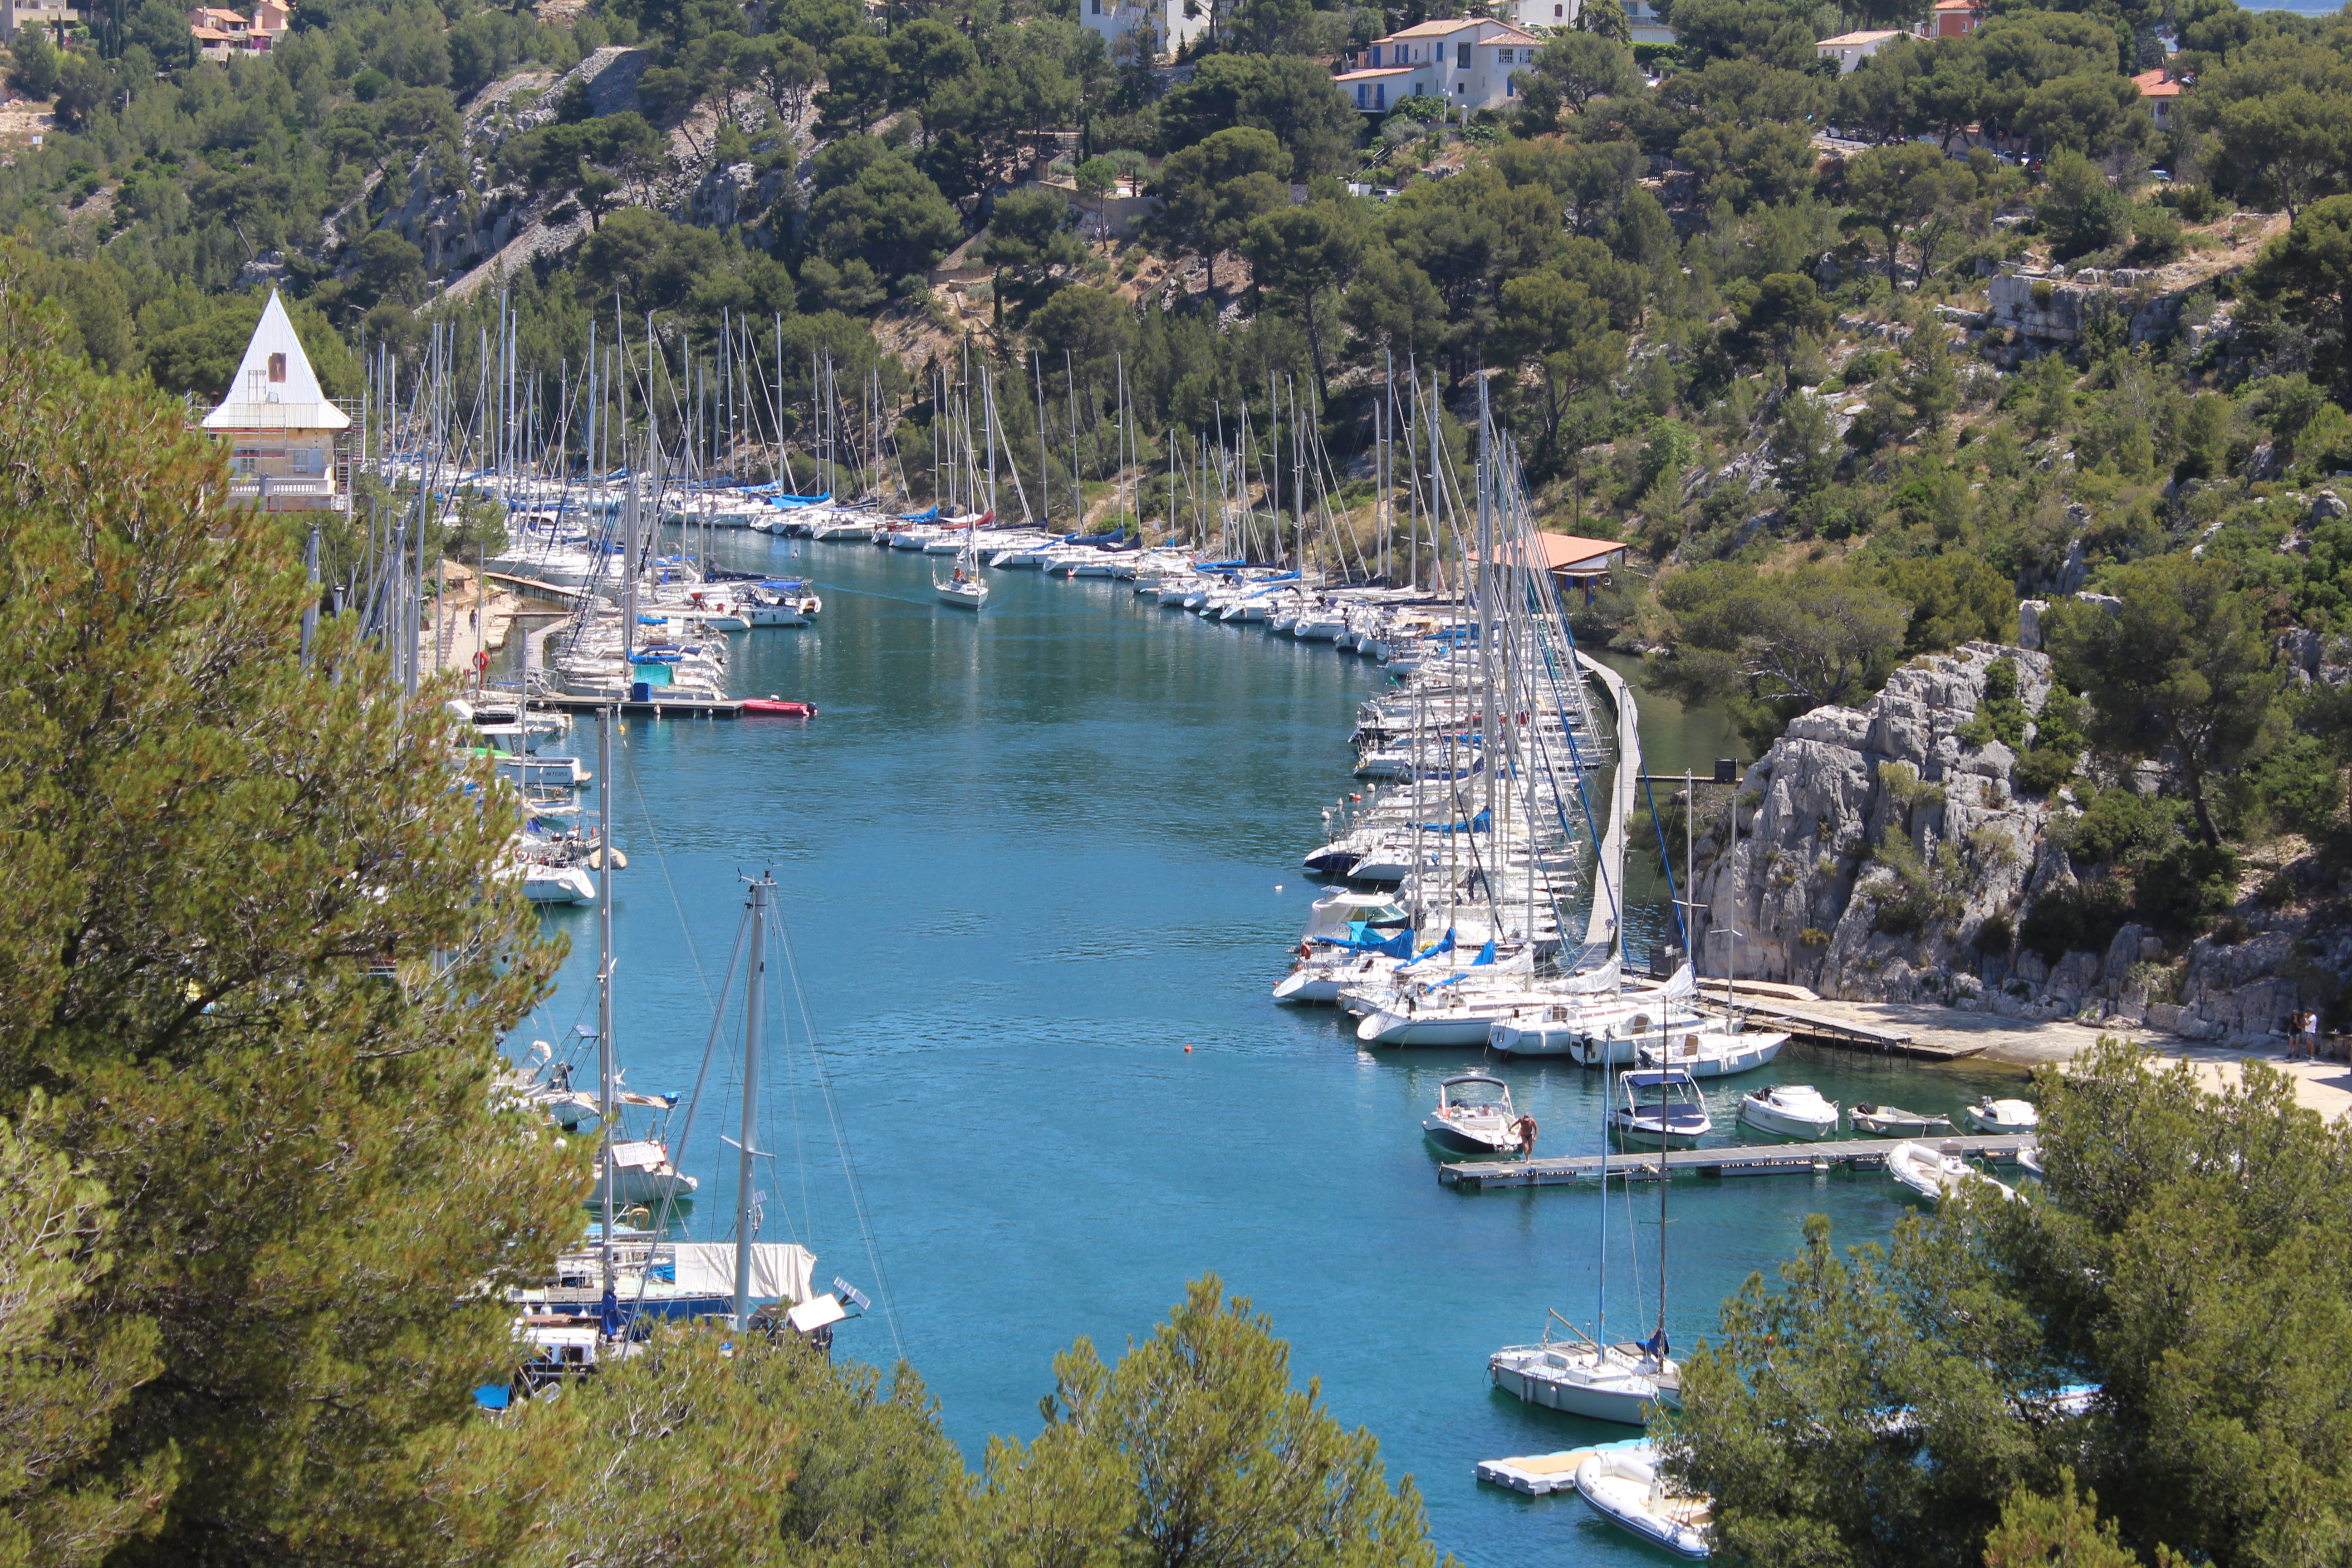 Location Canoe Cassis File Calanque Port Miou Cassis 4 Jpg Wikimedia Commons